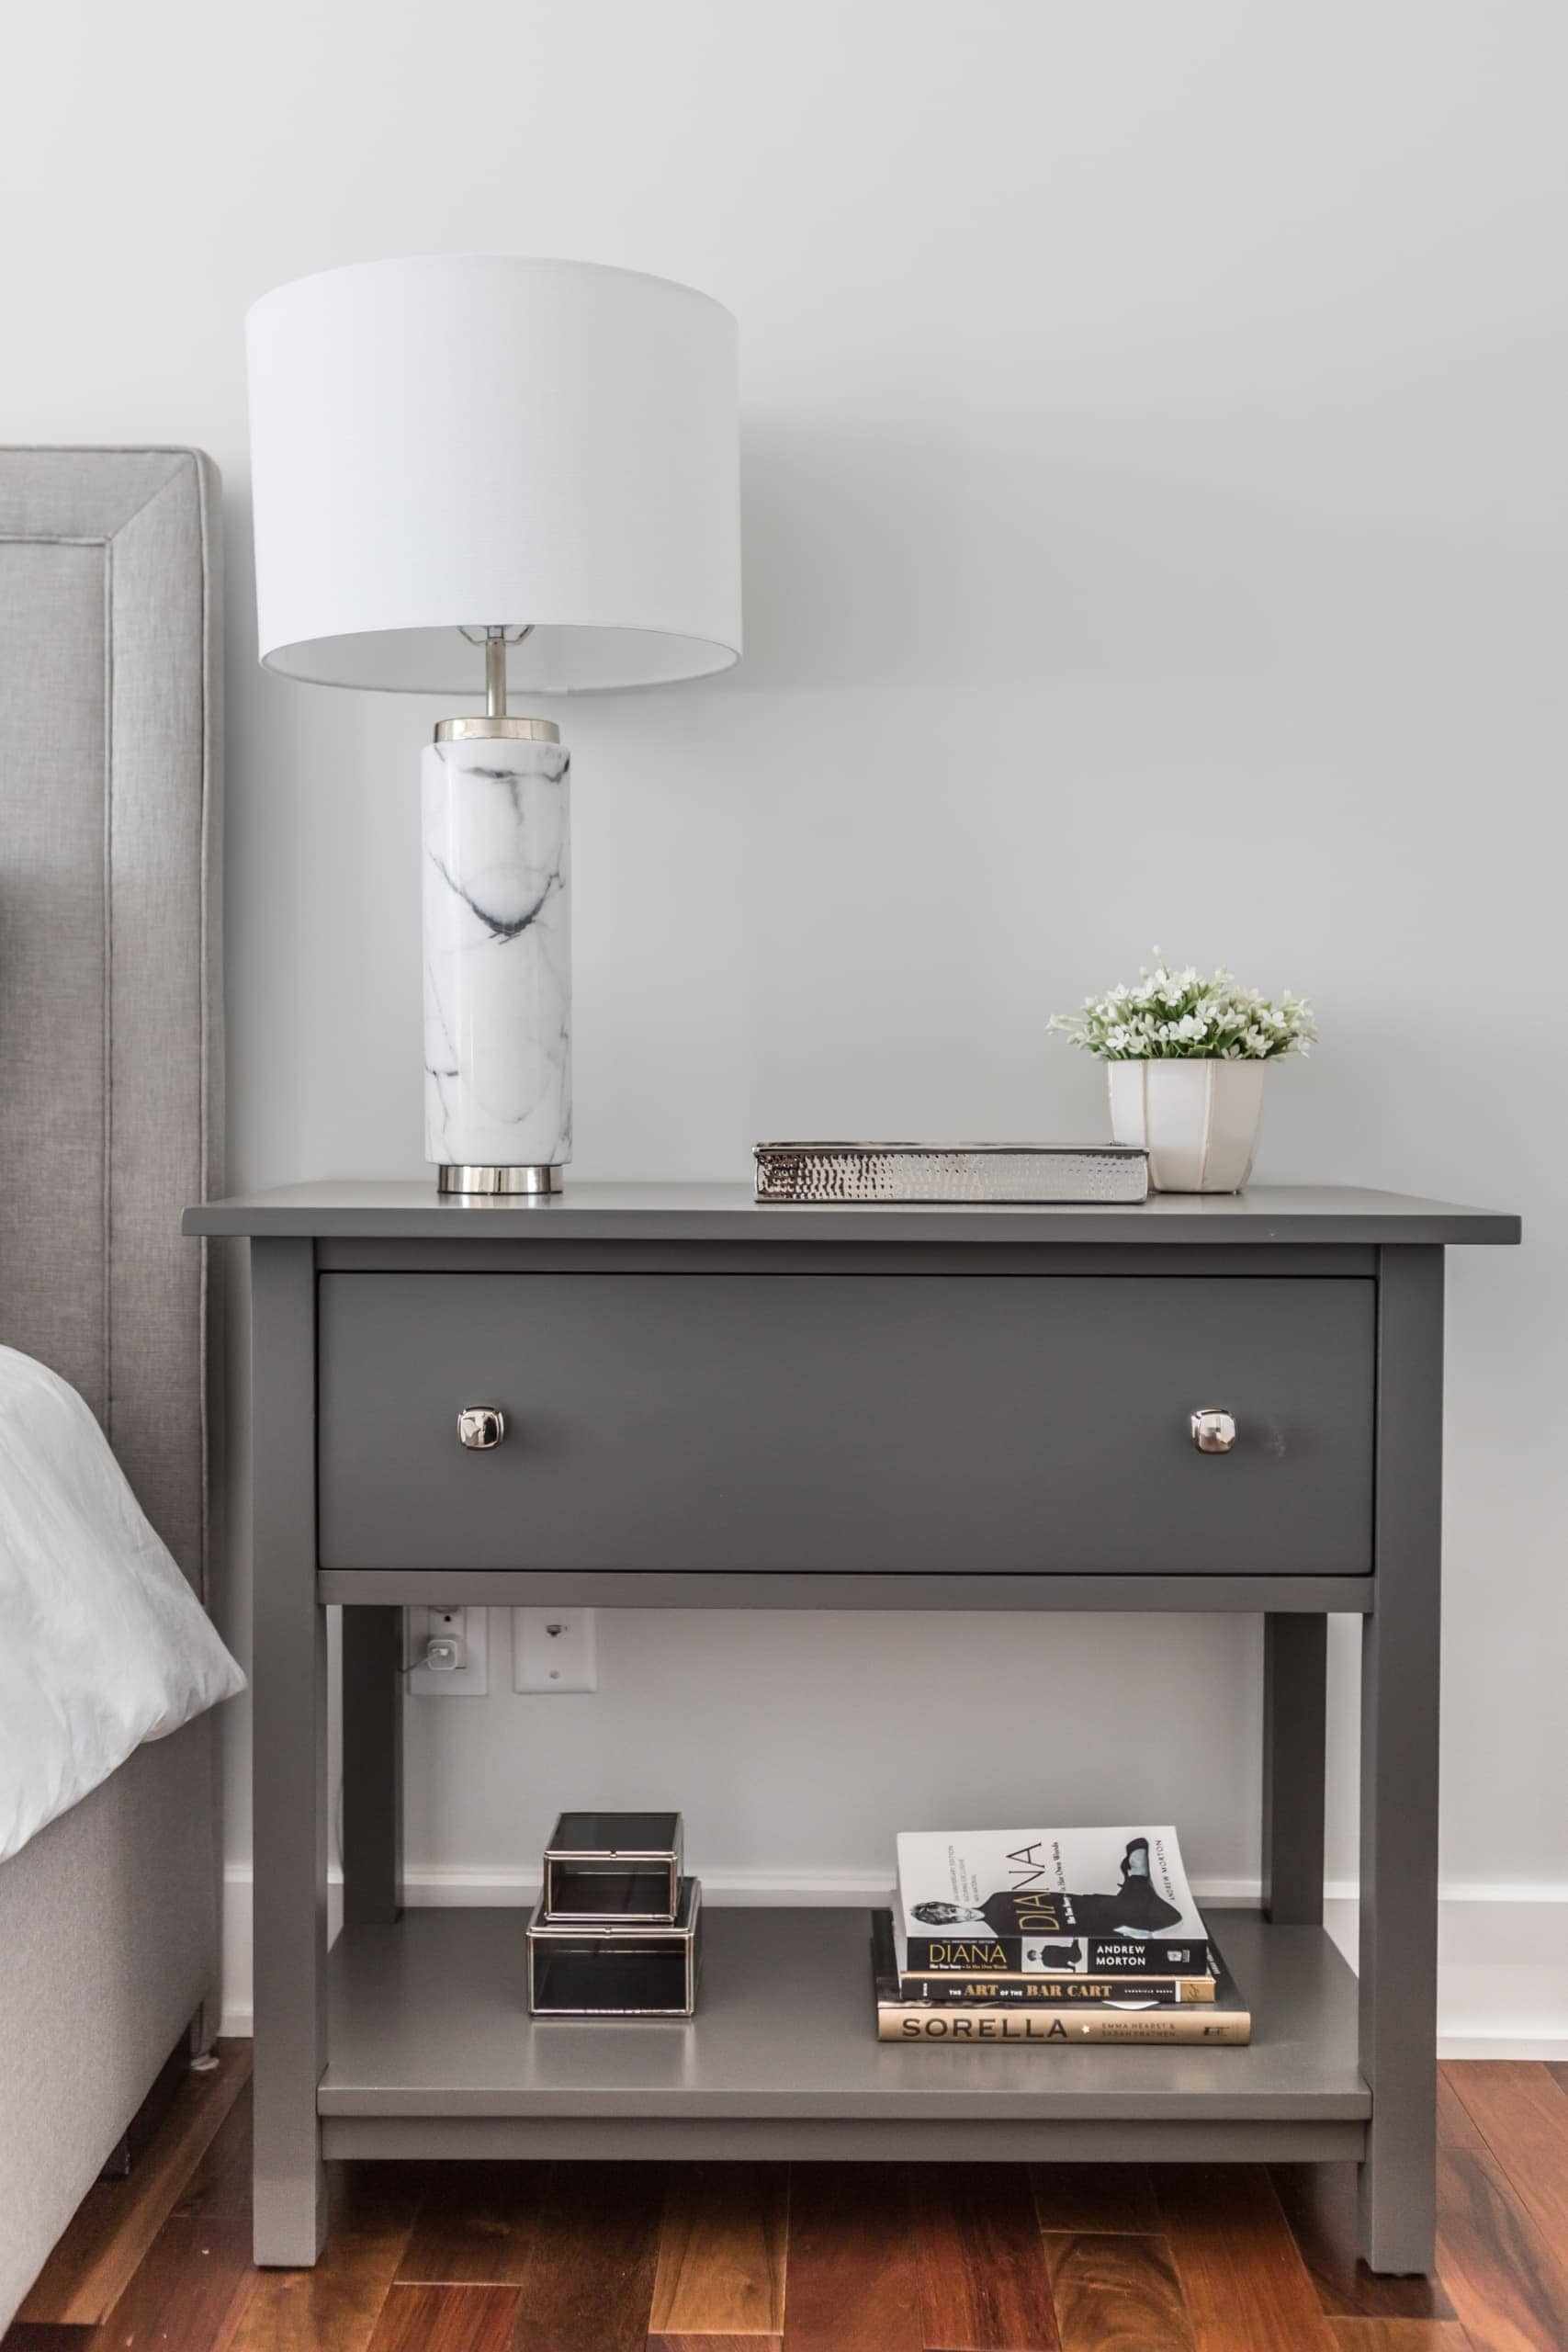 Dark bedside table next to the bed